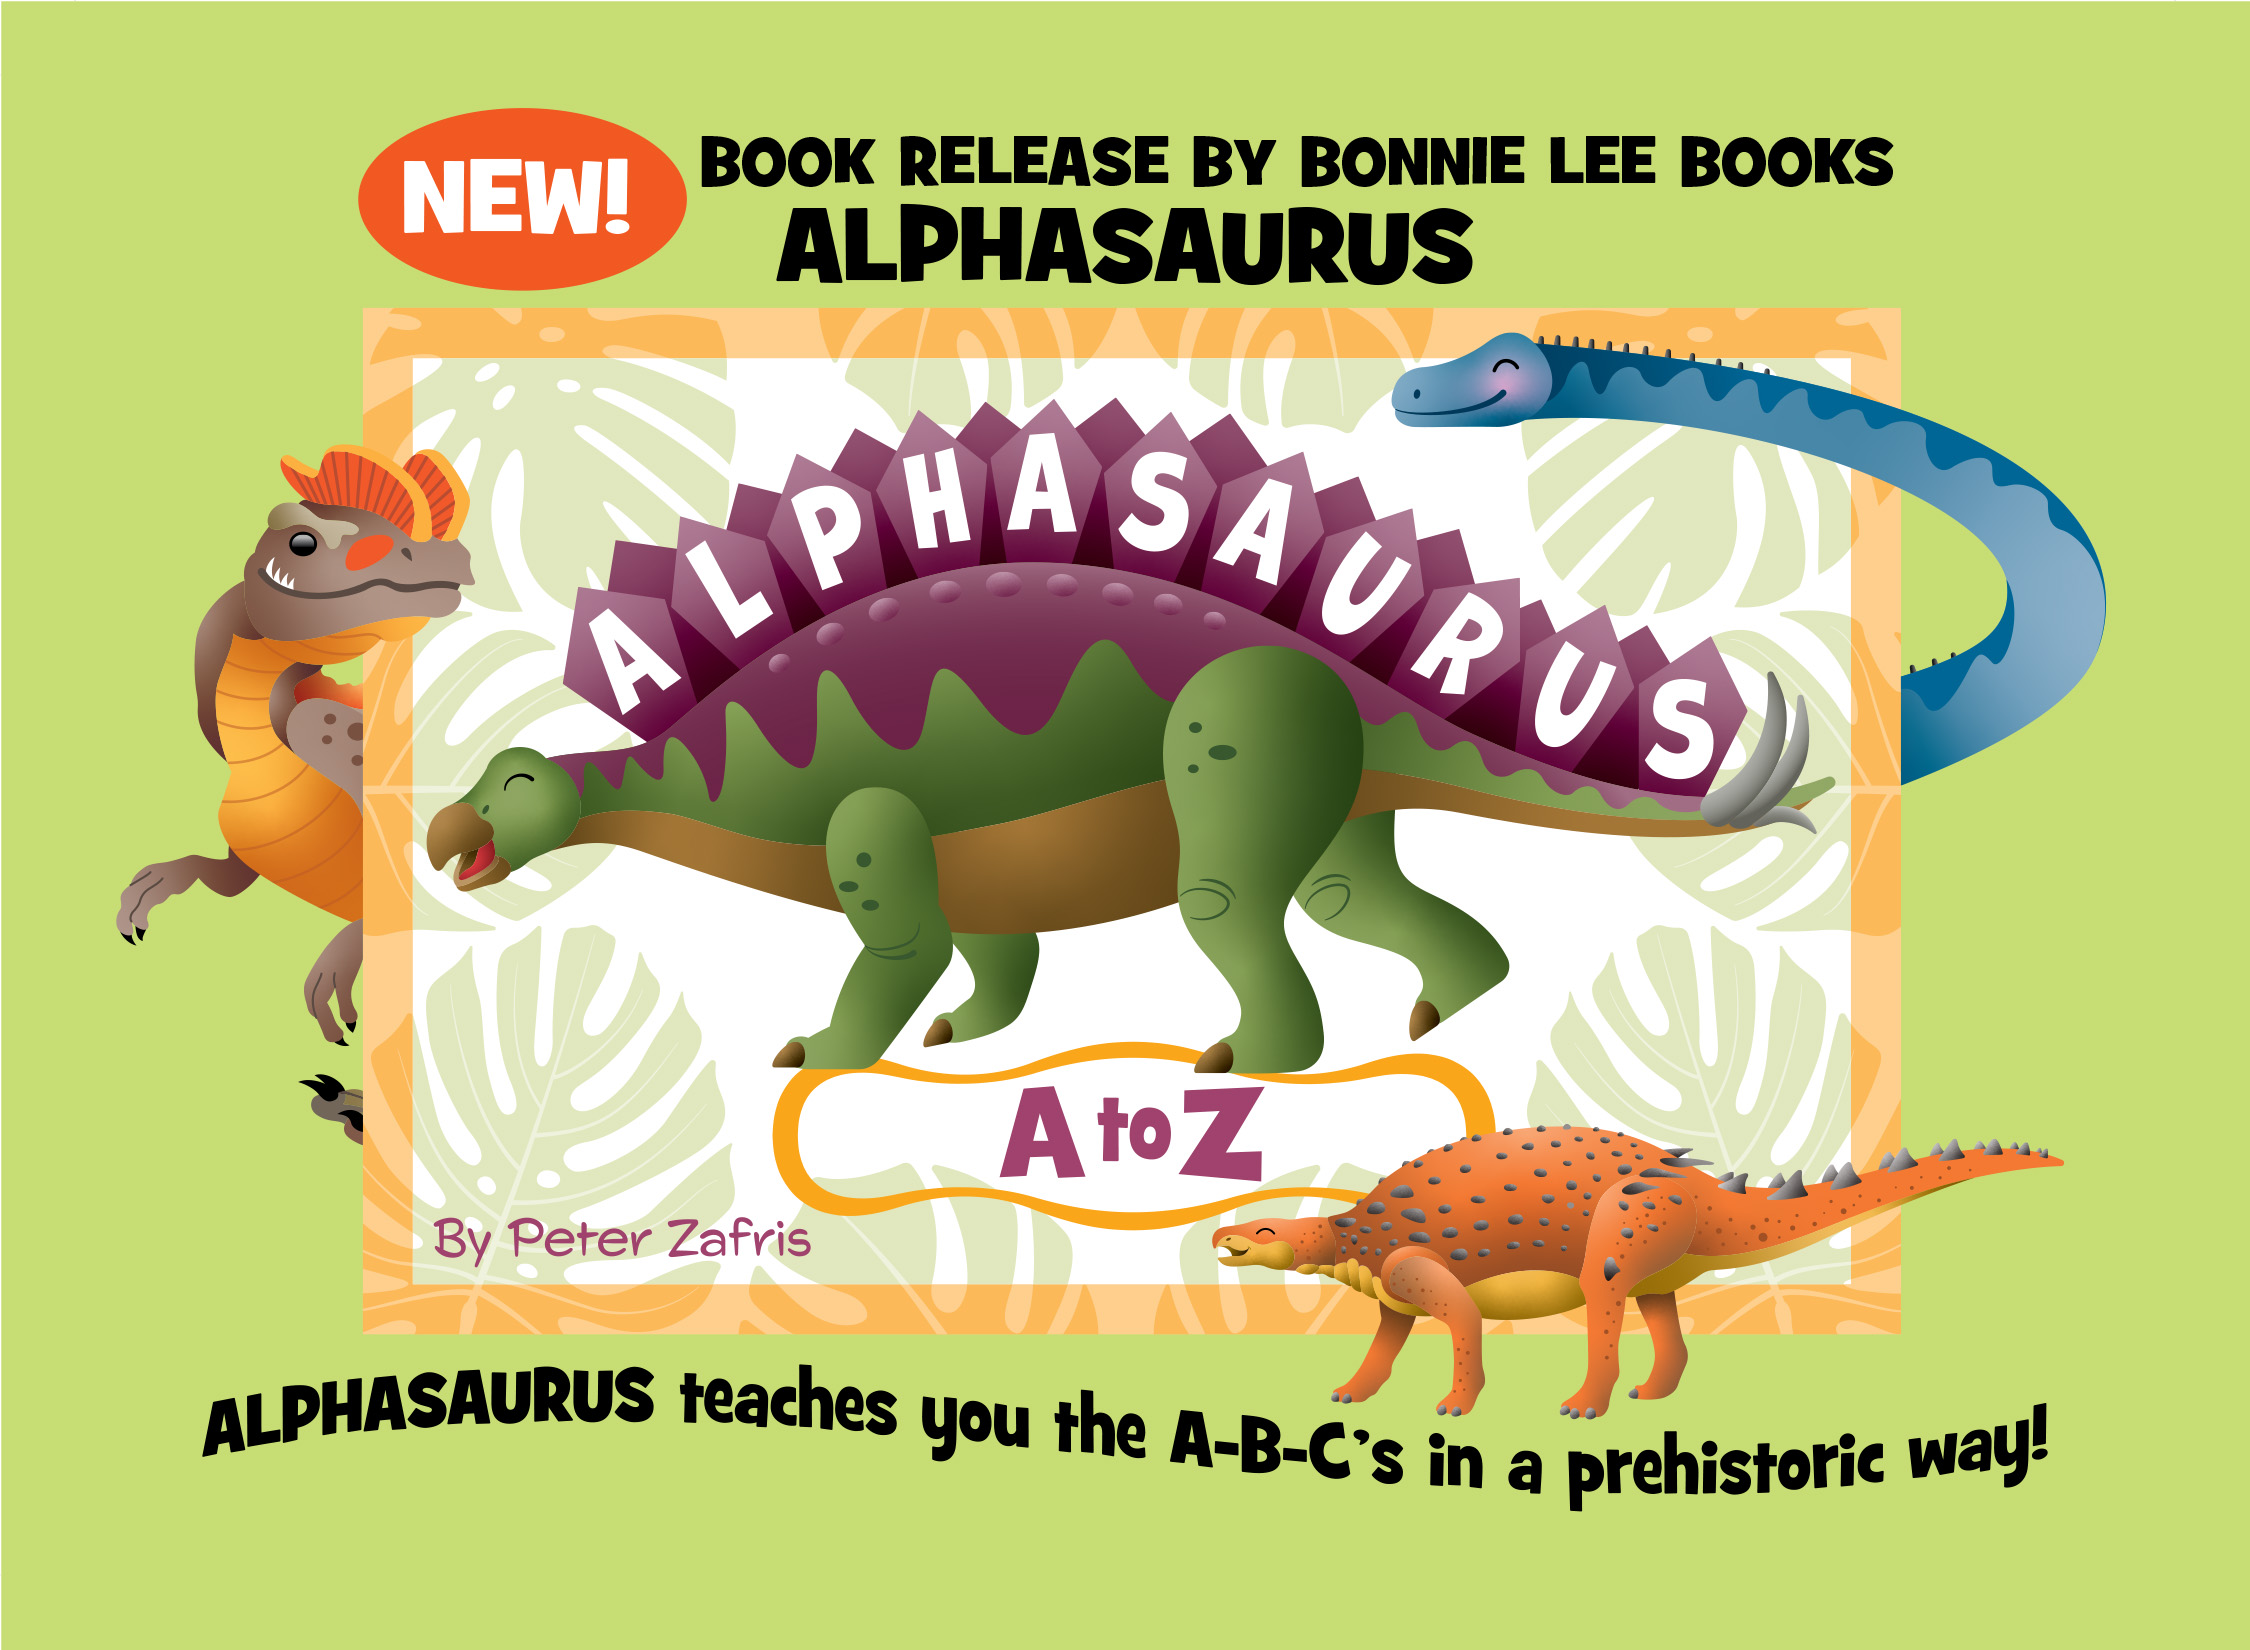 ALPHASAURUS by Peter Zafris teaches your child the A-B-C's in a prehistoric way!